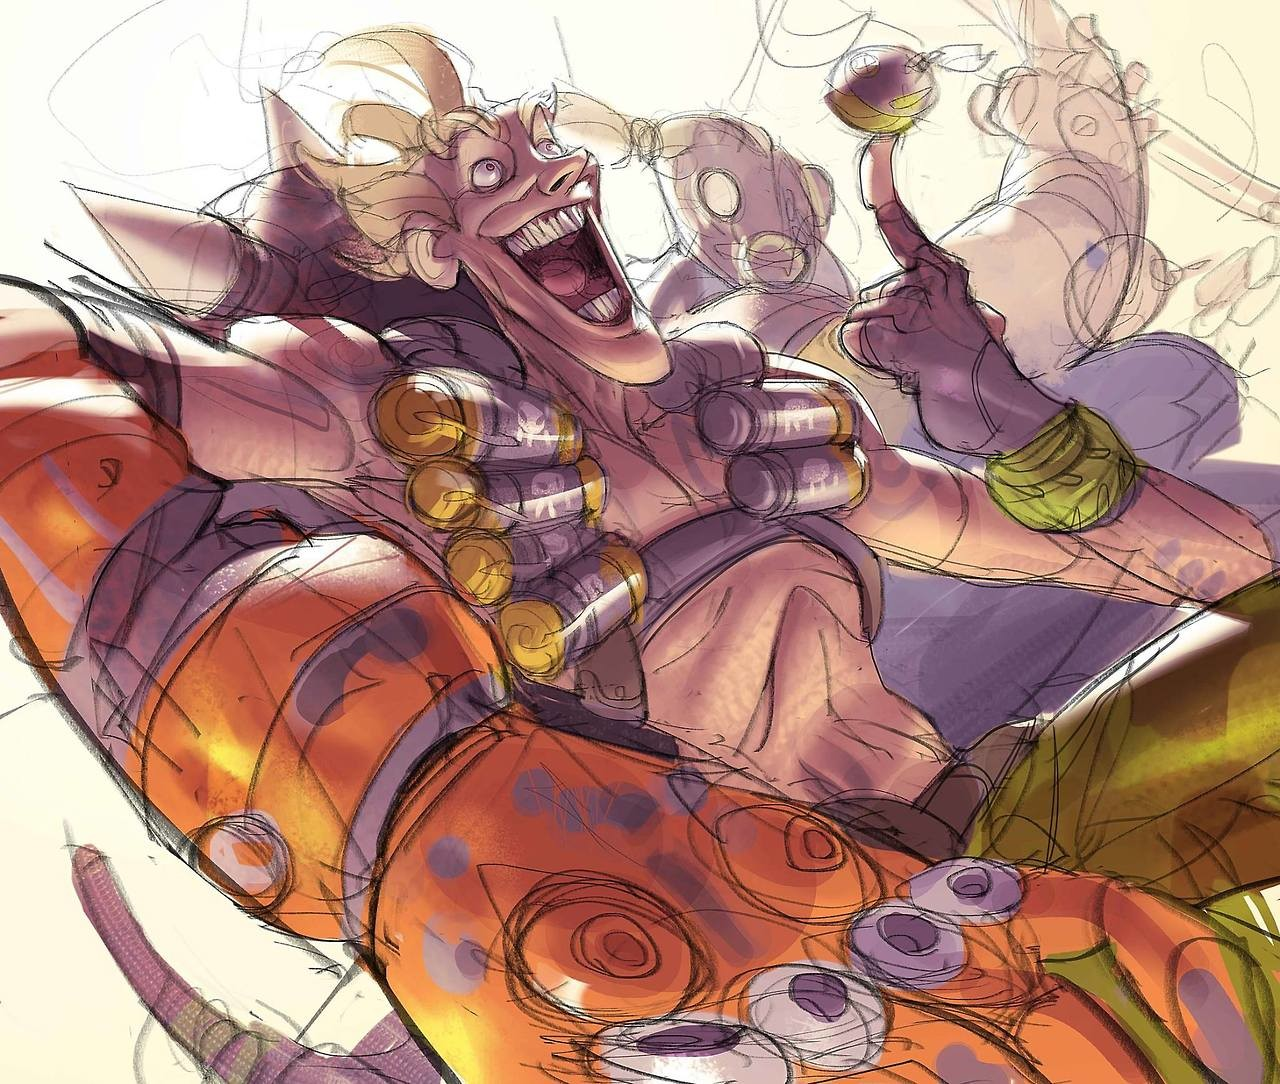 Why Junkrat looks so happy? It's because he drank to much gasoline? It's because he watch to many cat videos? Why god? so many questions...